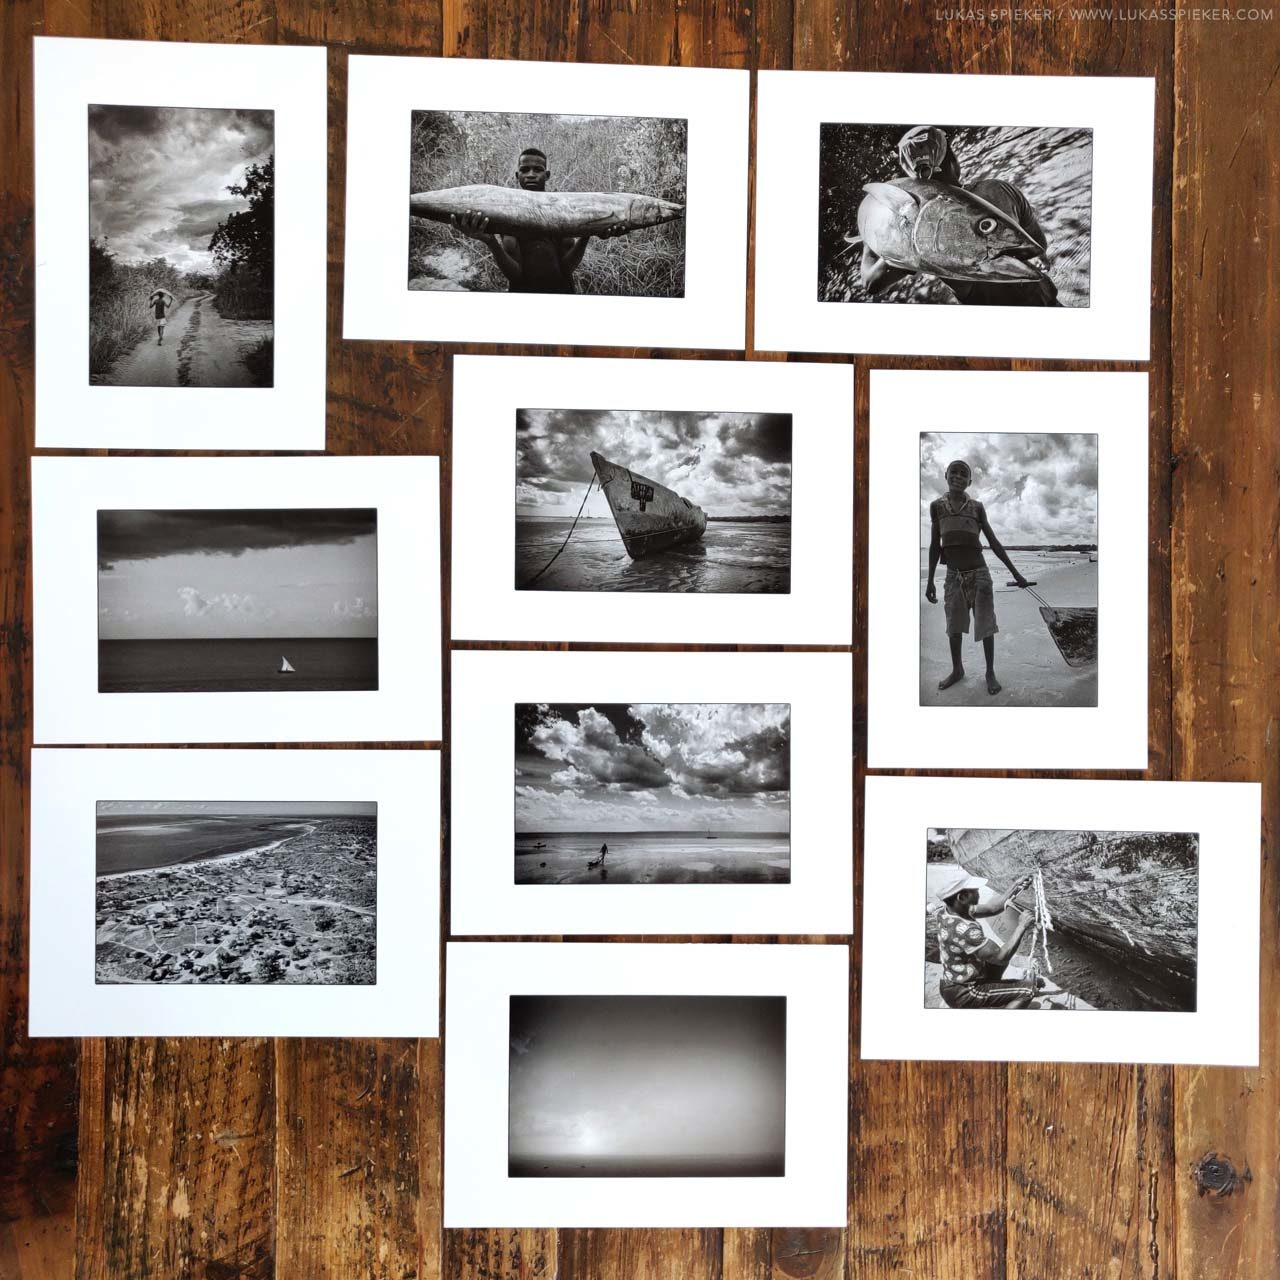 Black and white prints of the Fishermen series photographed in Mozambique.